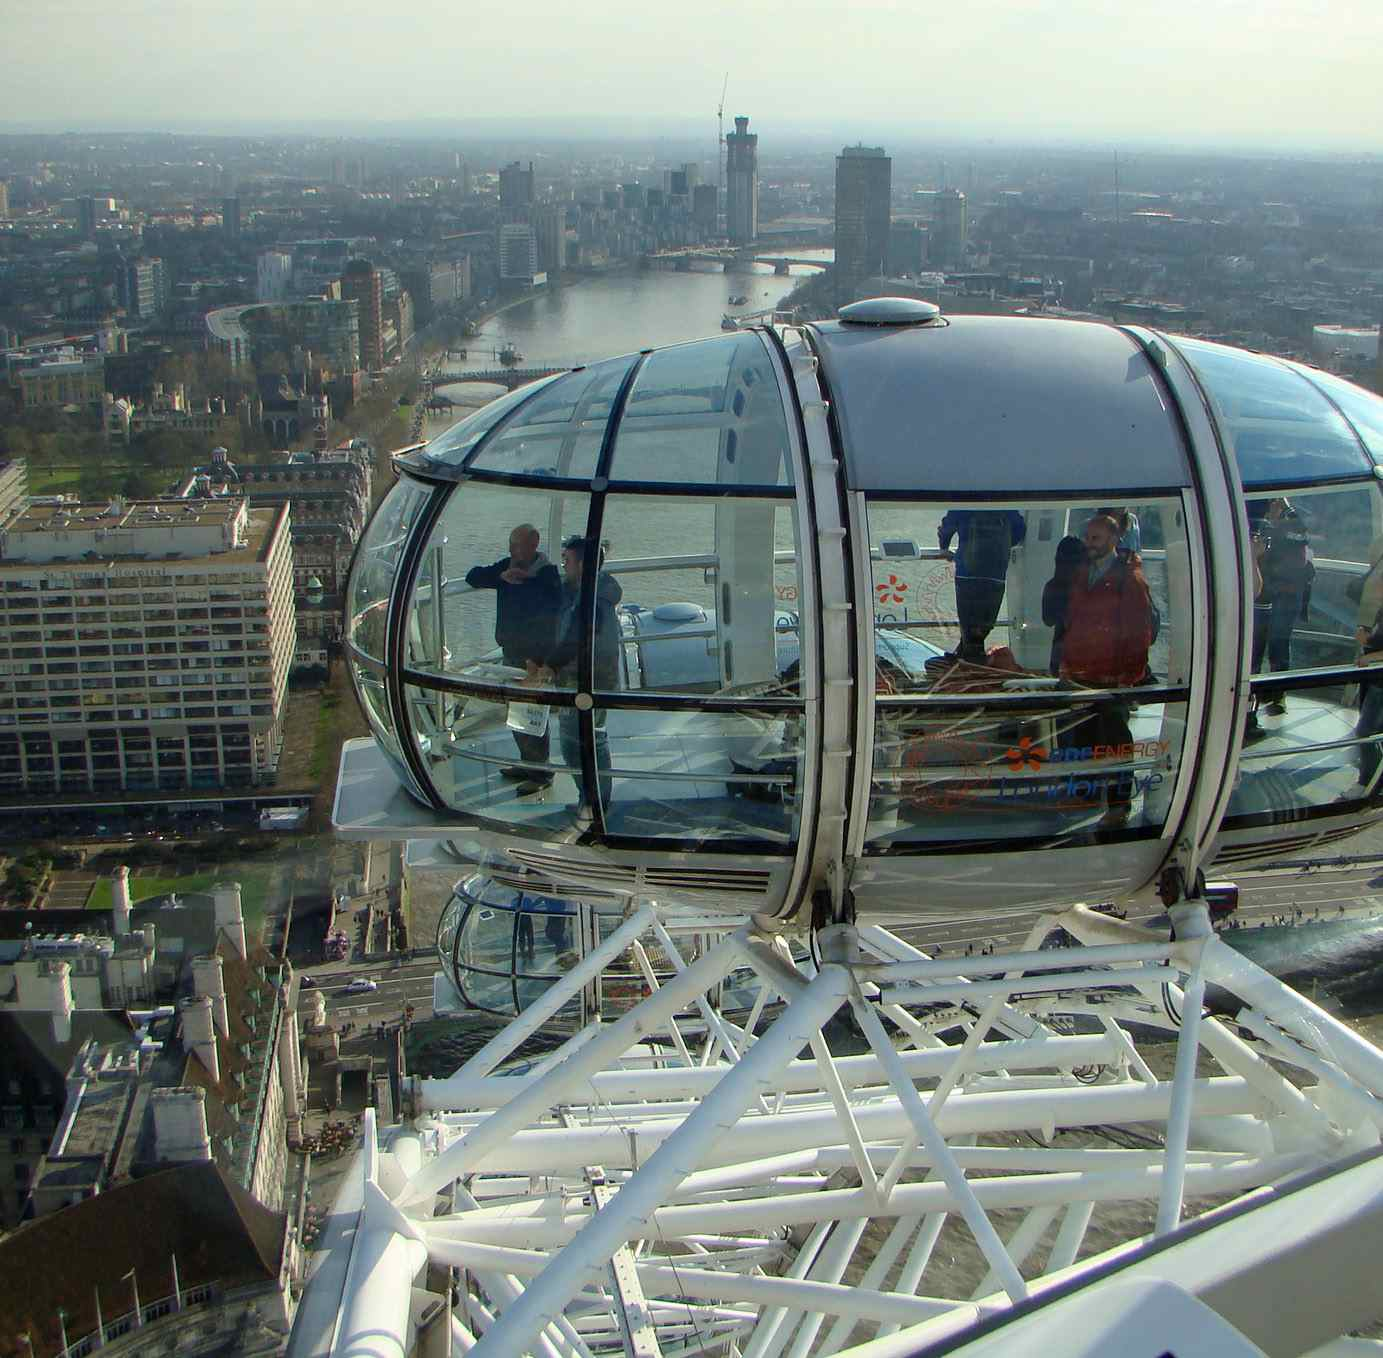 On top of the london eye